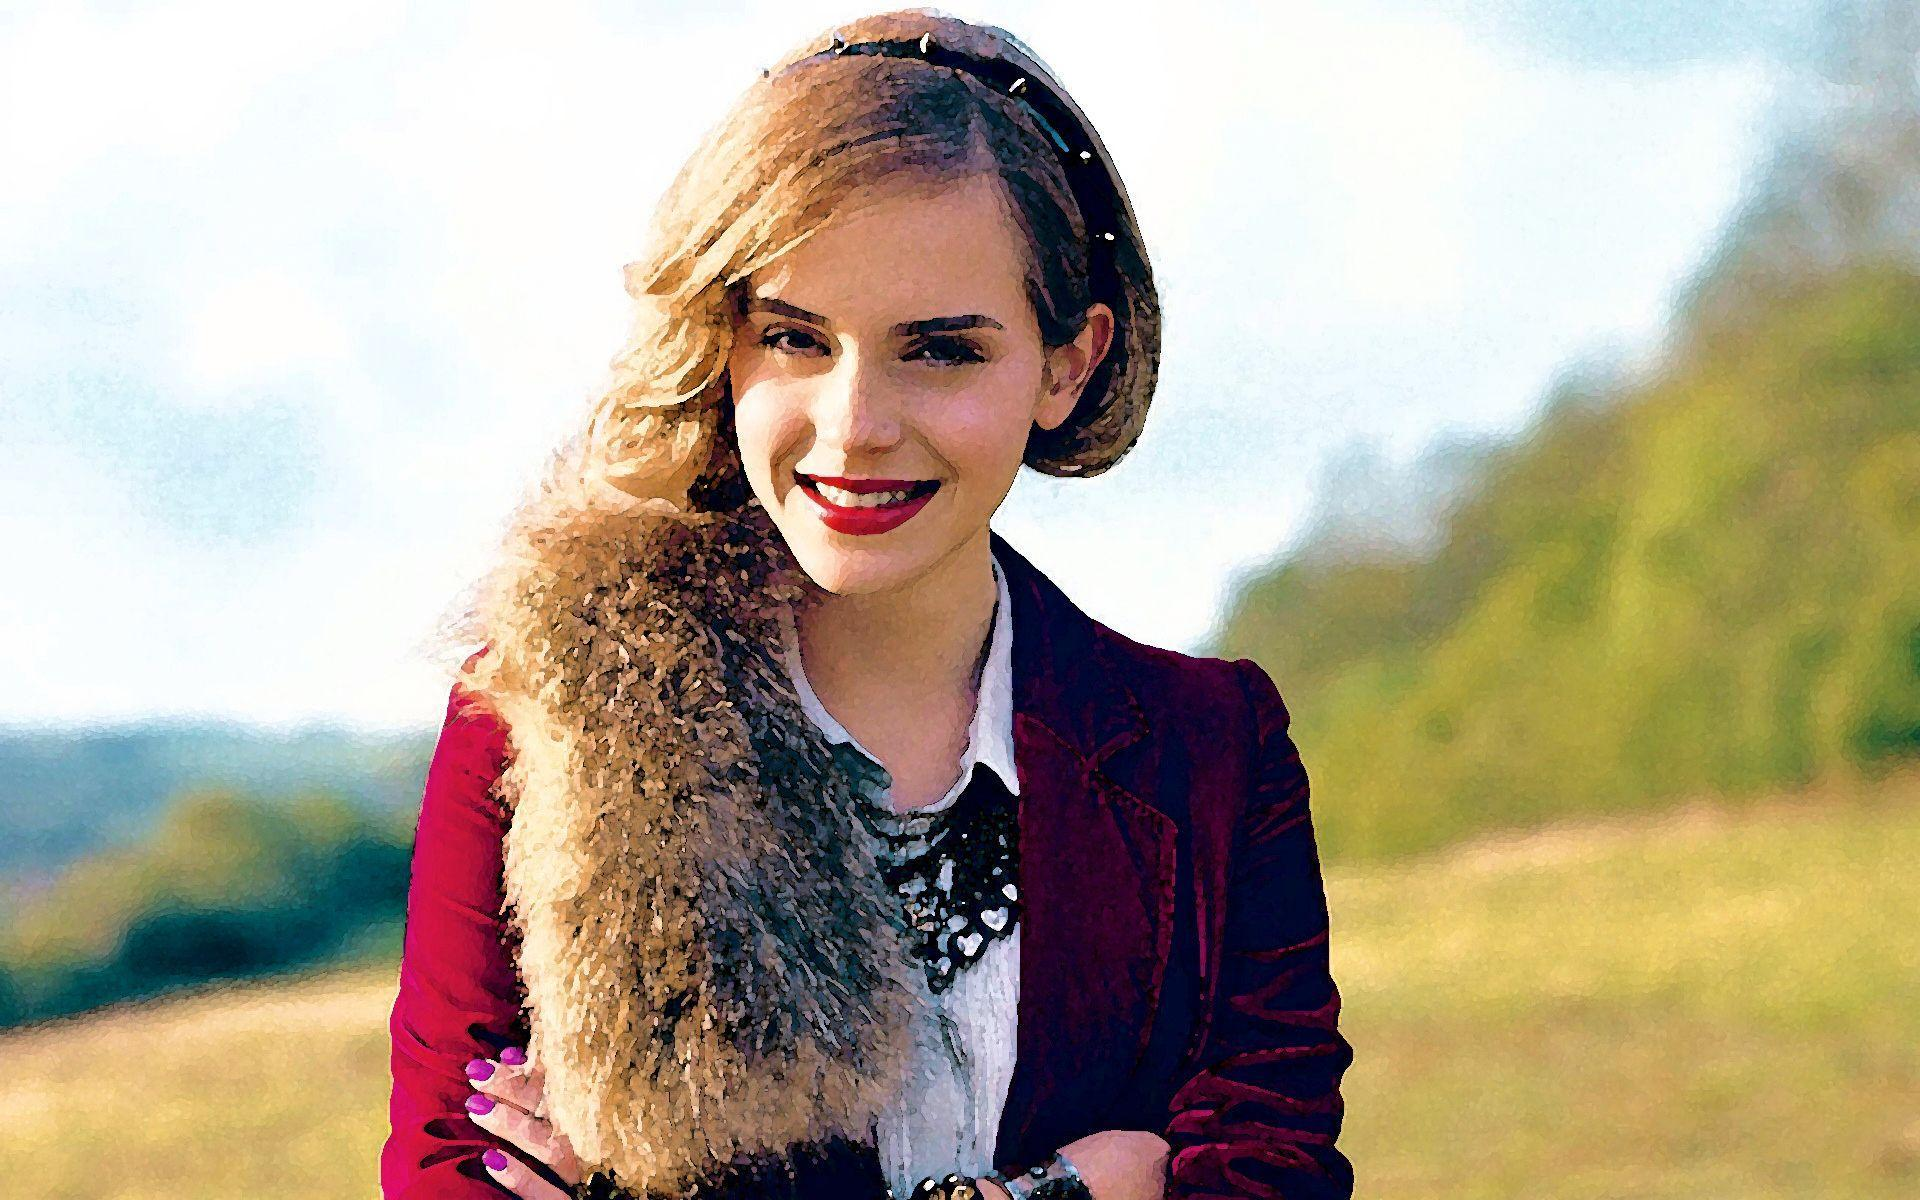 Wallpaper's Collection: «Emma Watson Wallpapers»